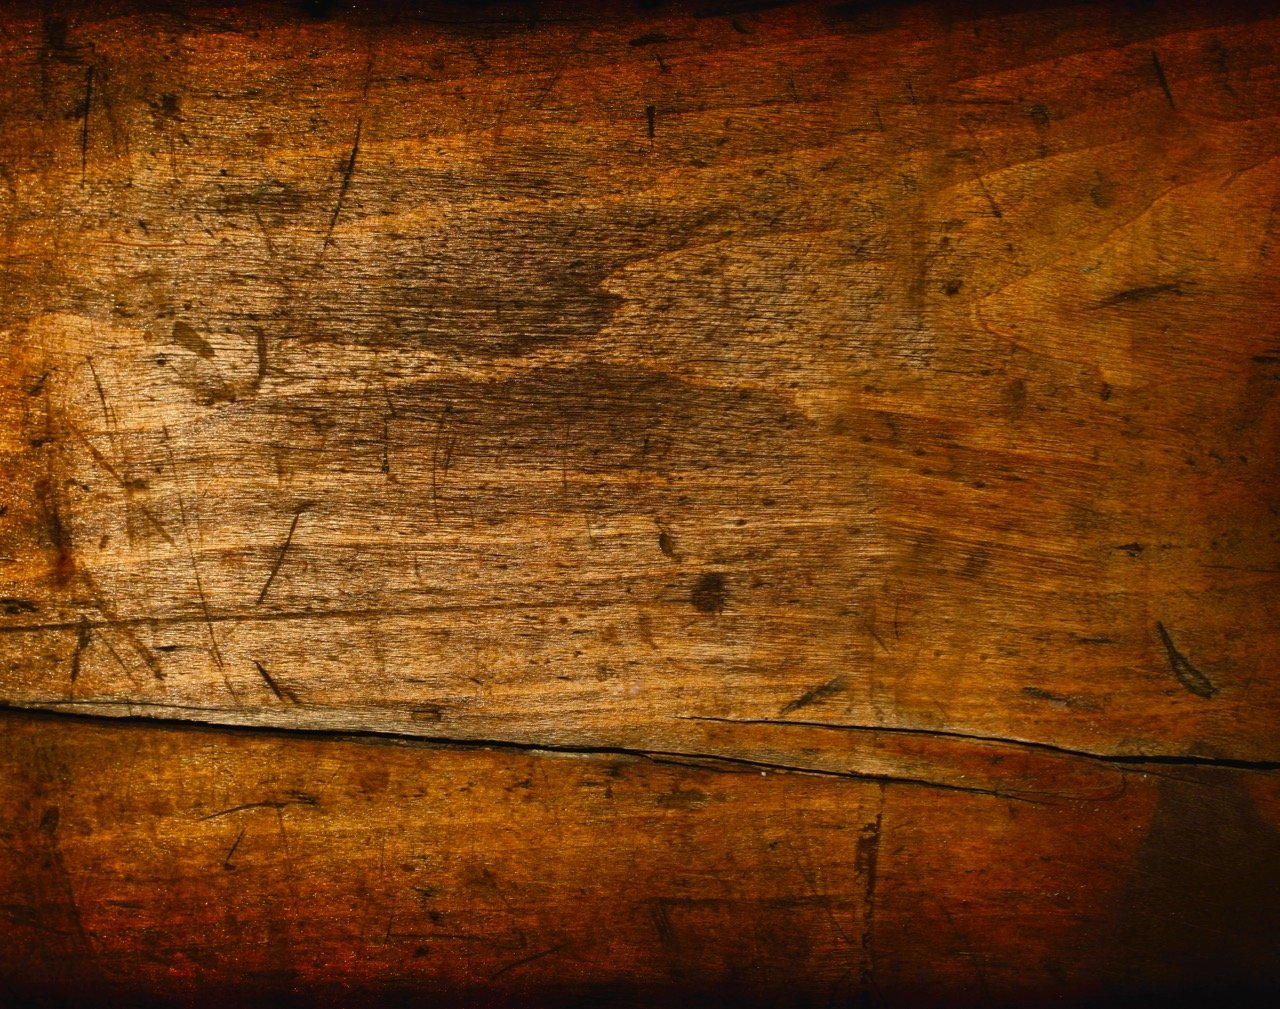 OFILA Rustic Wood Backdrop 14x10ft Wooden Wall Photos Background Wood Floor Photos Rustic Party Decoration Hardwood Plank Backdrop Cake Smash Photos Wood Block Newborn Photography Props